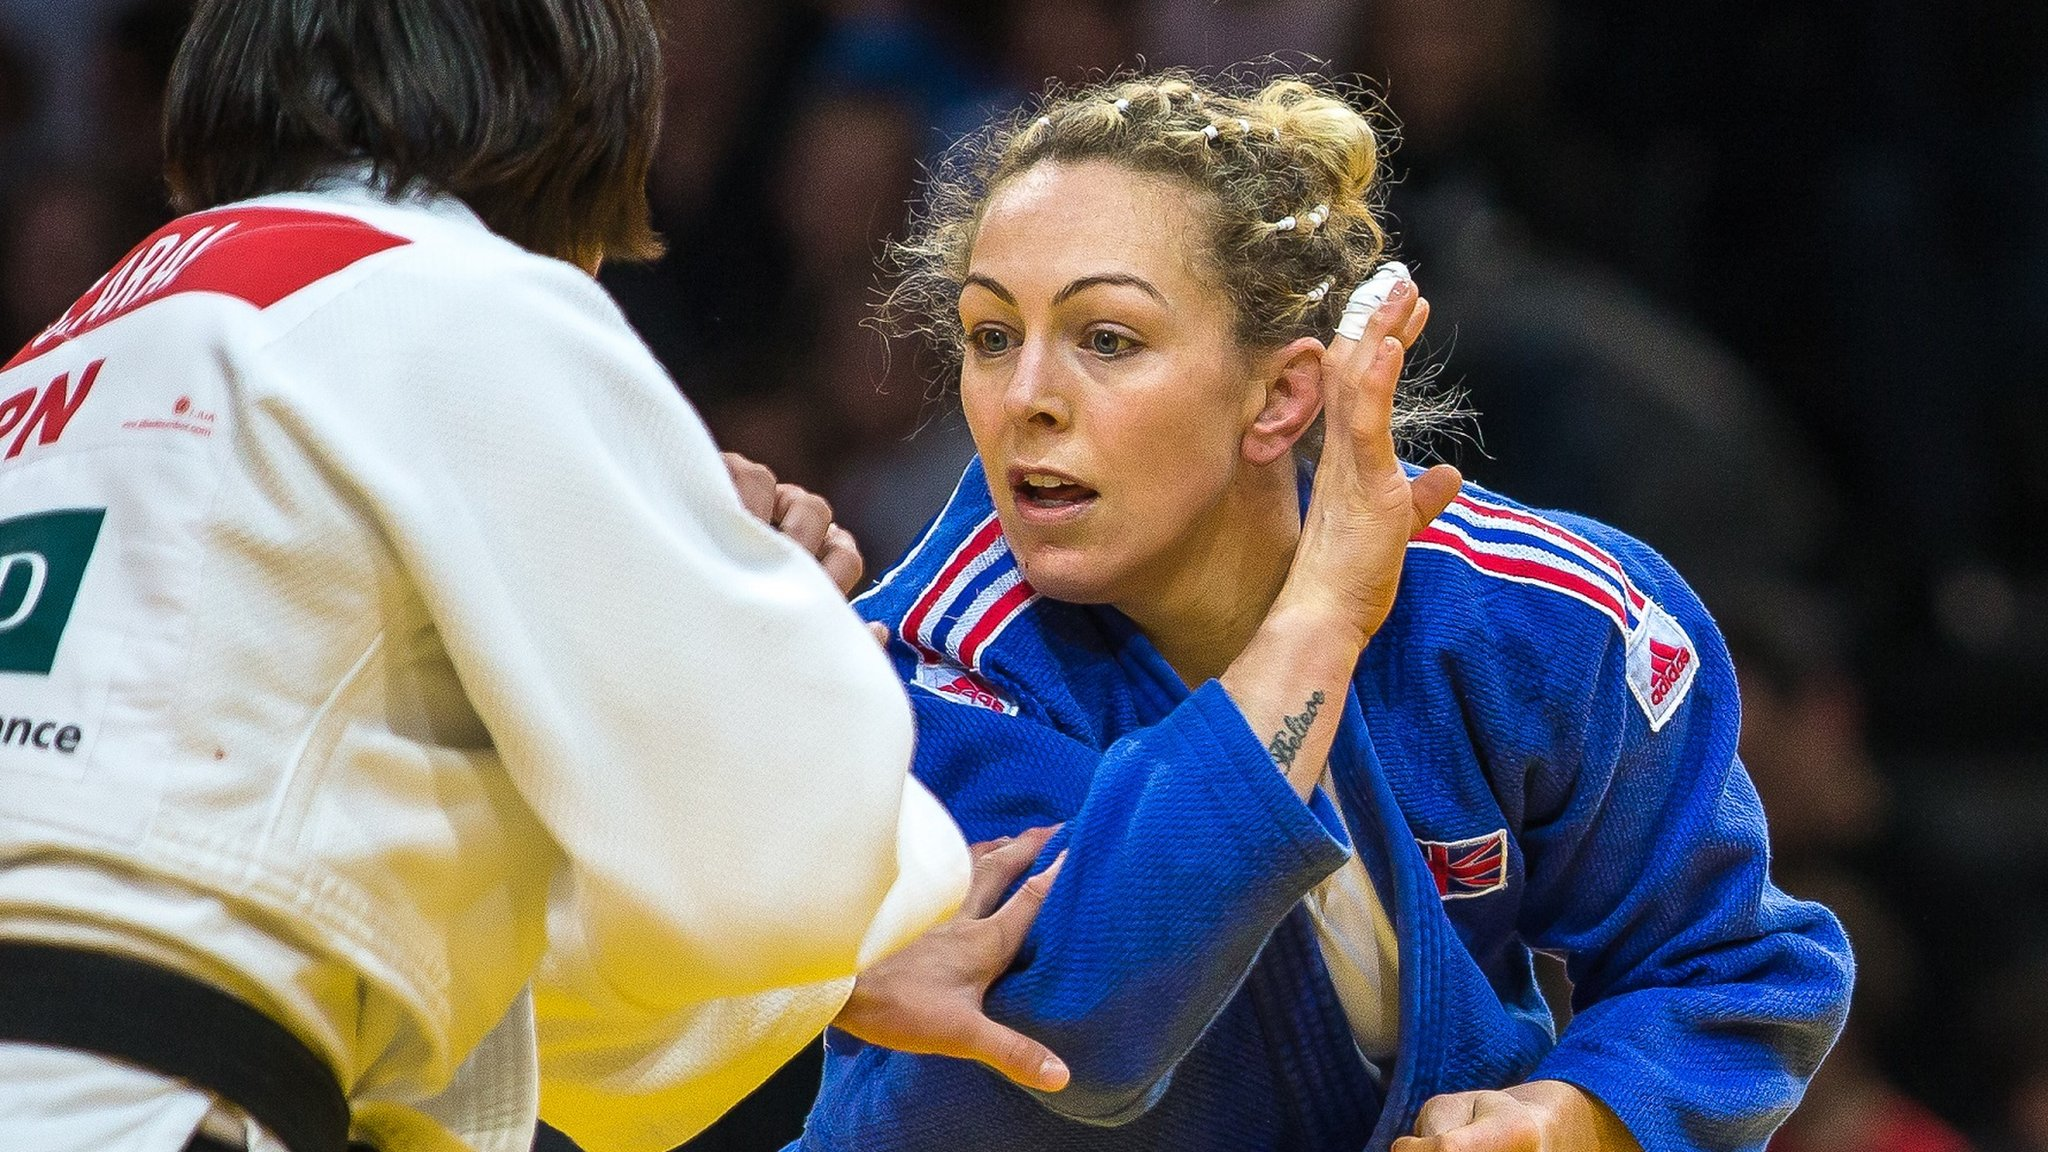 World Judo Championships: Olympic bronze medallist Sally Conway to lead GB squad